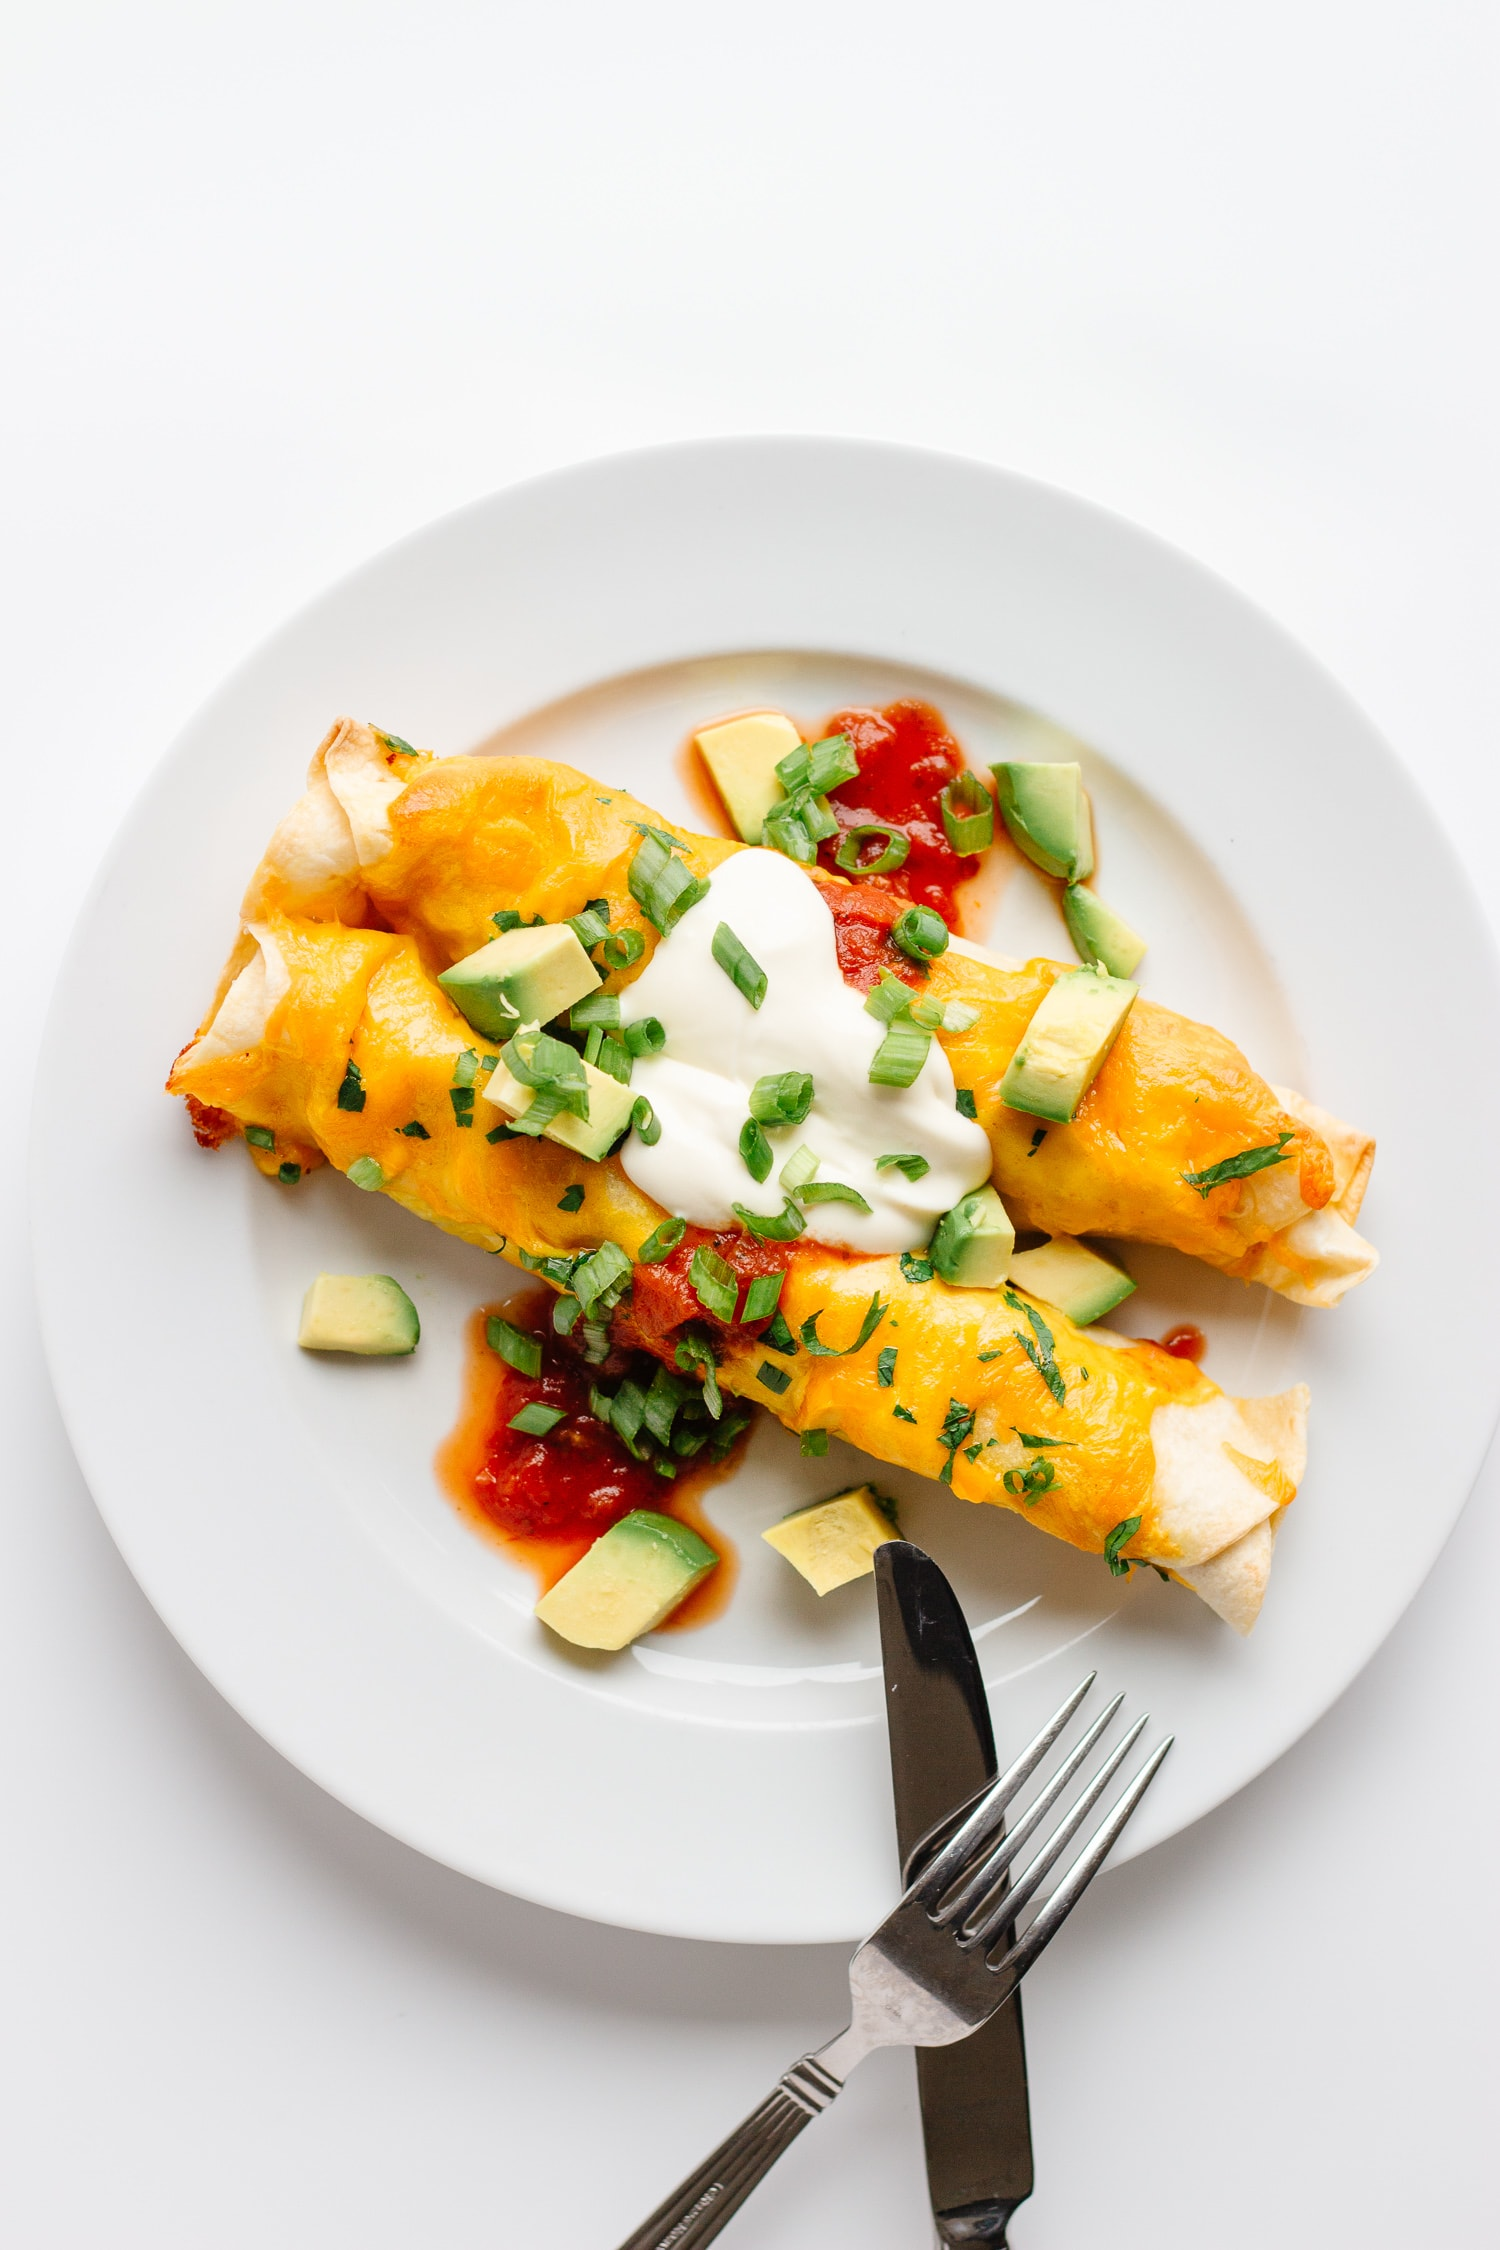 Two cheesy chicken enchiladas on a white plate garnished with cubed avocado, salsa, sour cream and chopped green onions.